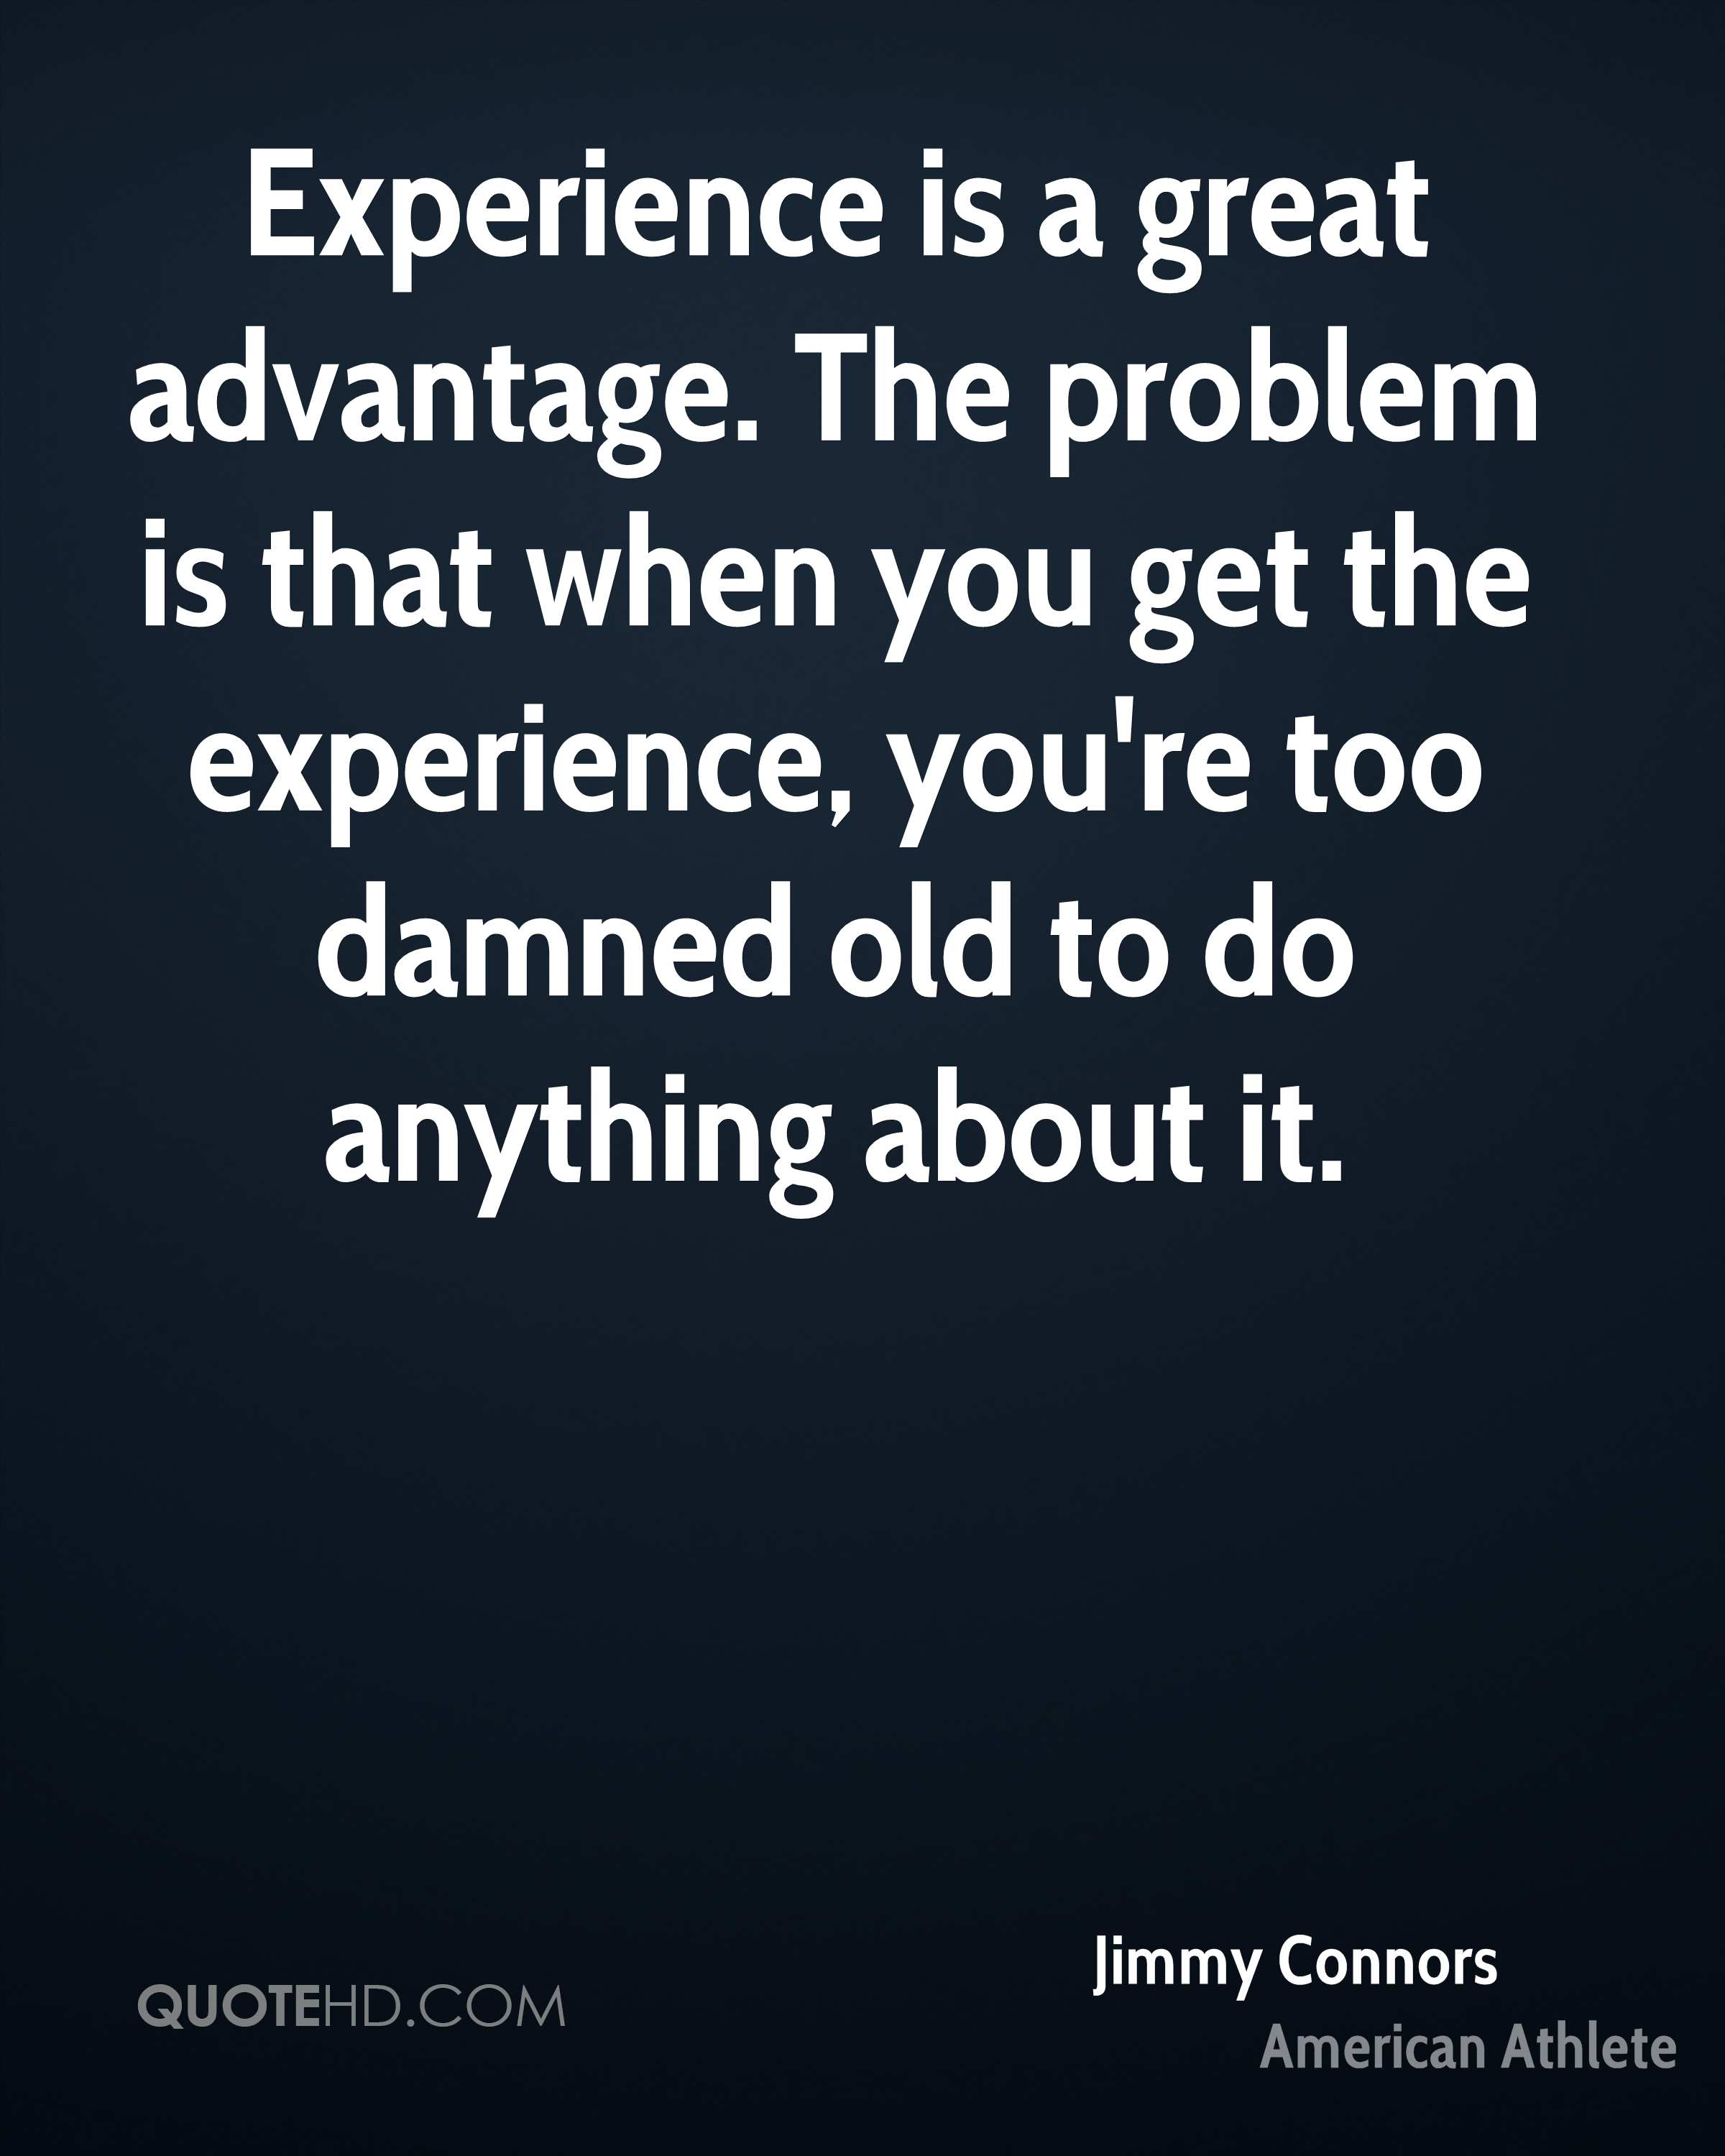 Experience is a great advantage. The problem is that when you get the experience, you're too damned old to do anything about it.